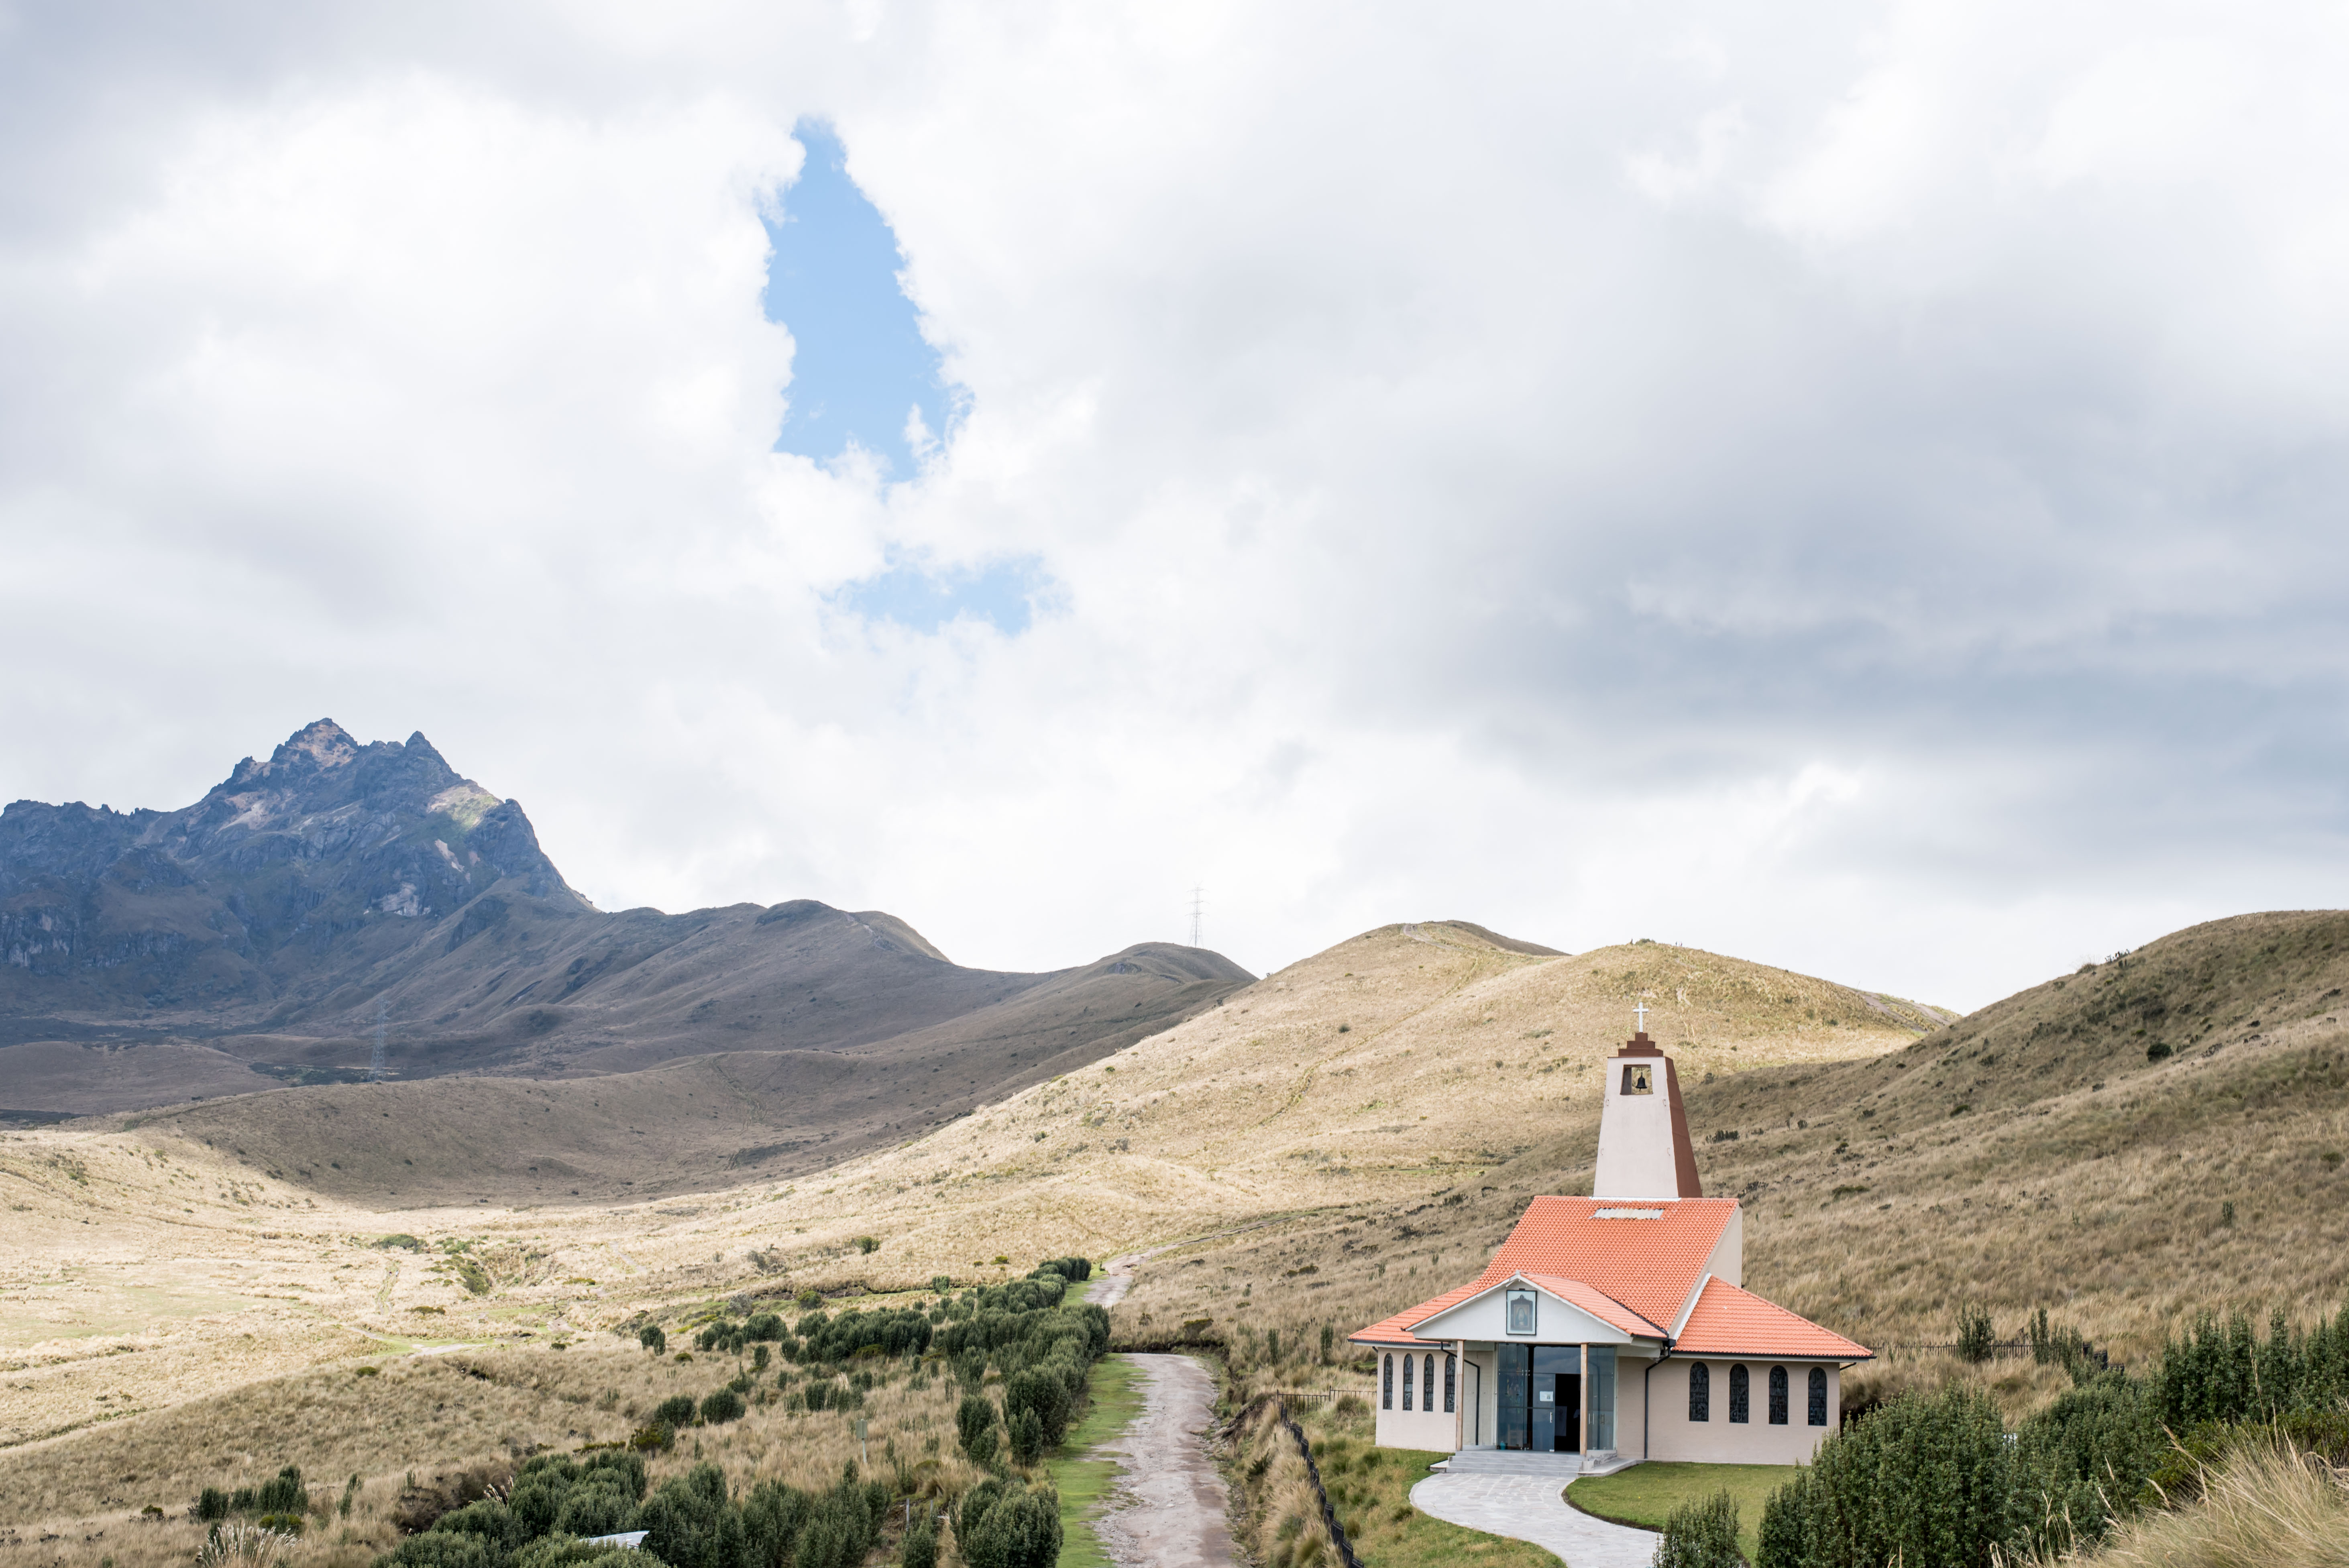 Quito Travel Guide - Hiking Pichincha Volcano